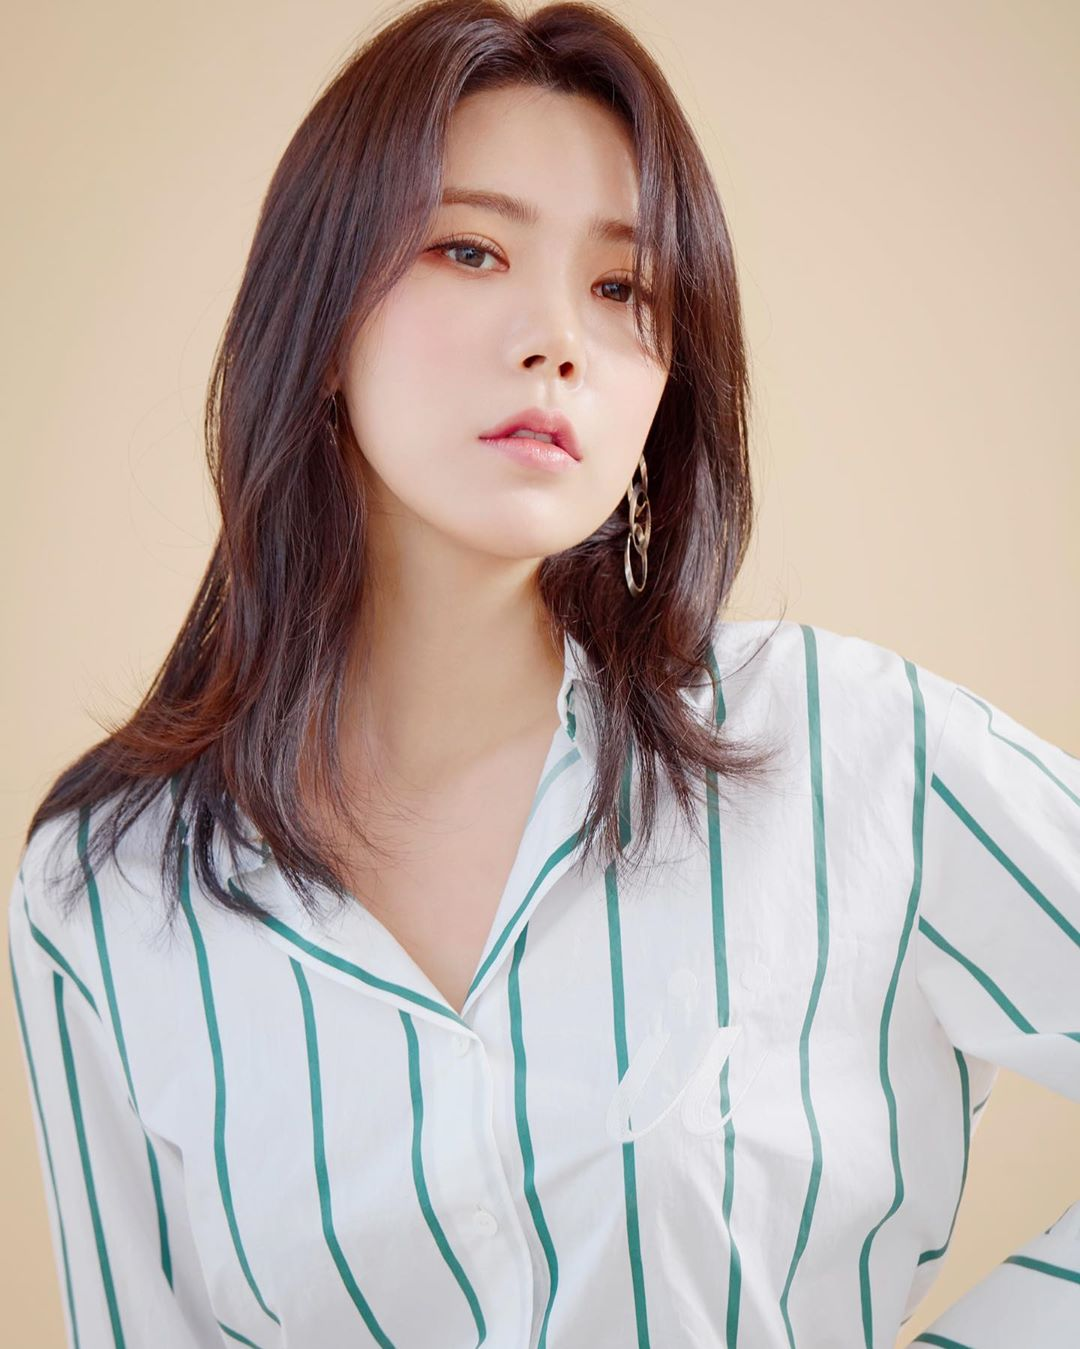 Park Soo Young (1992)